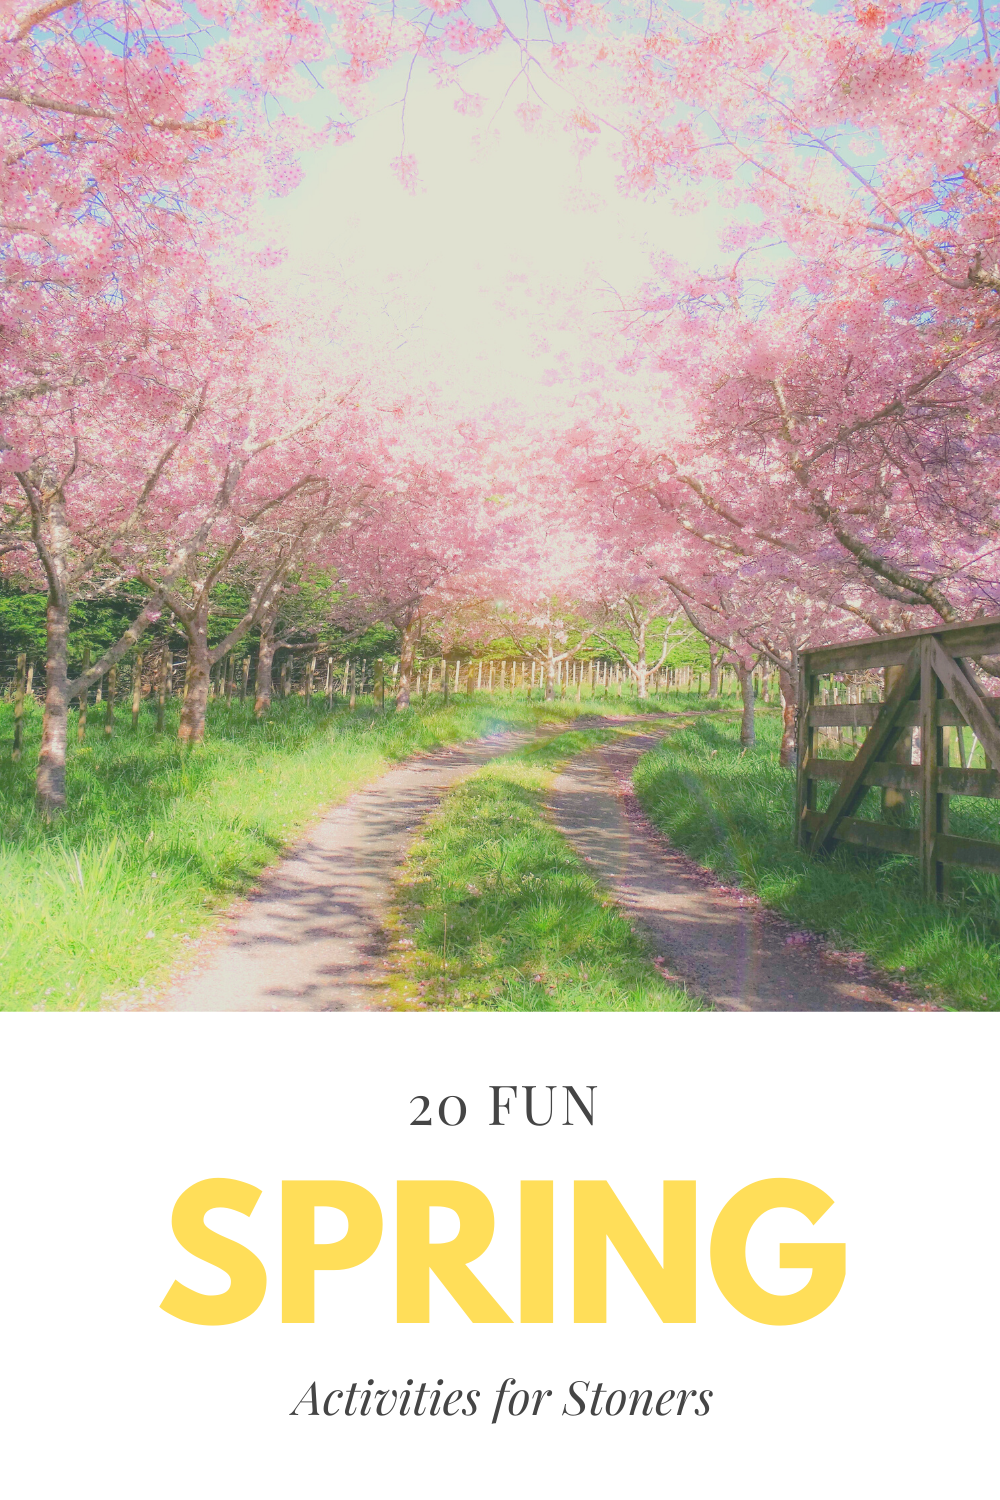 20 Fun Spring Activities for Stoners